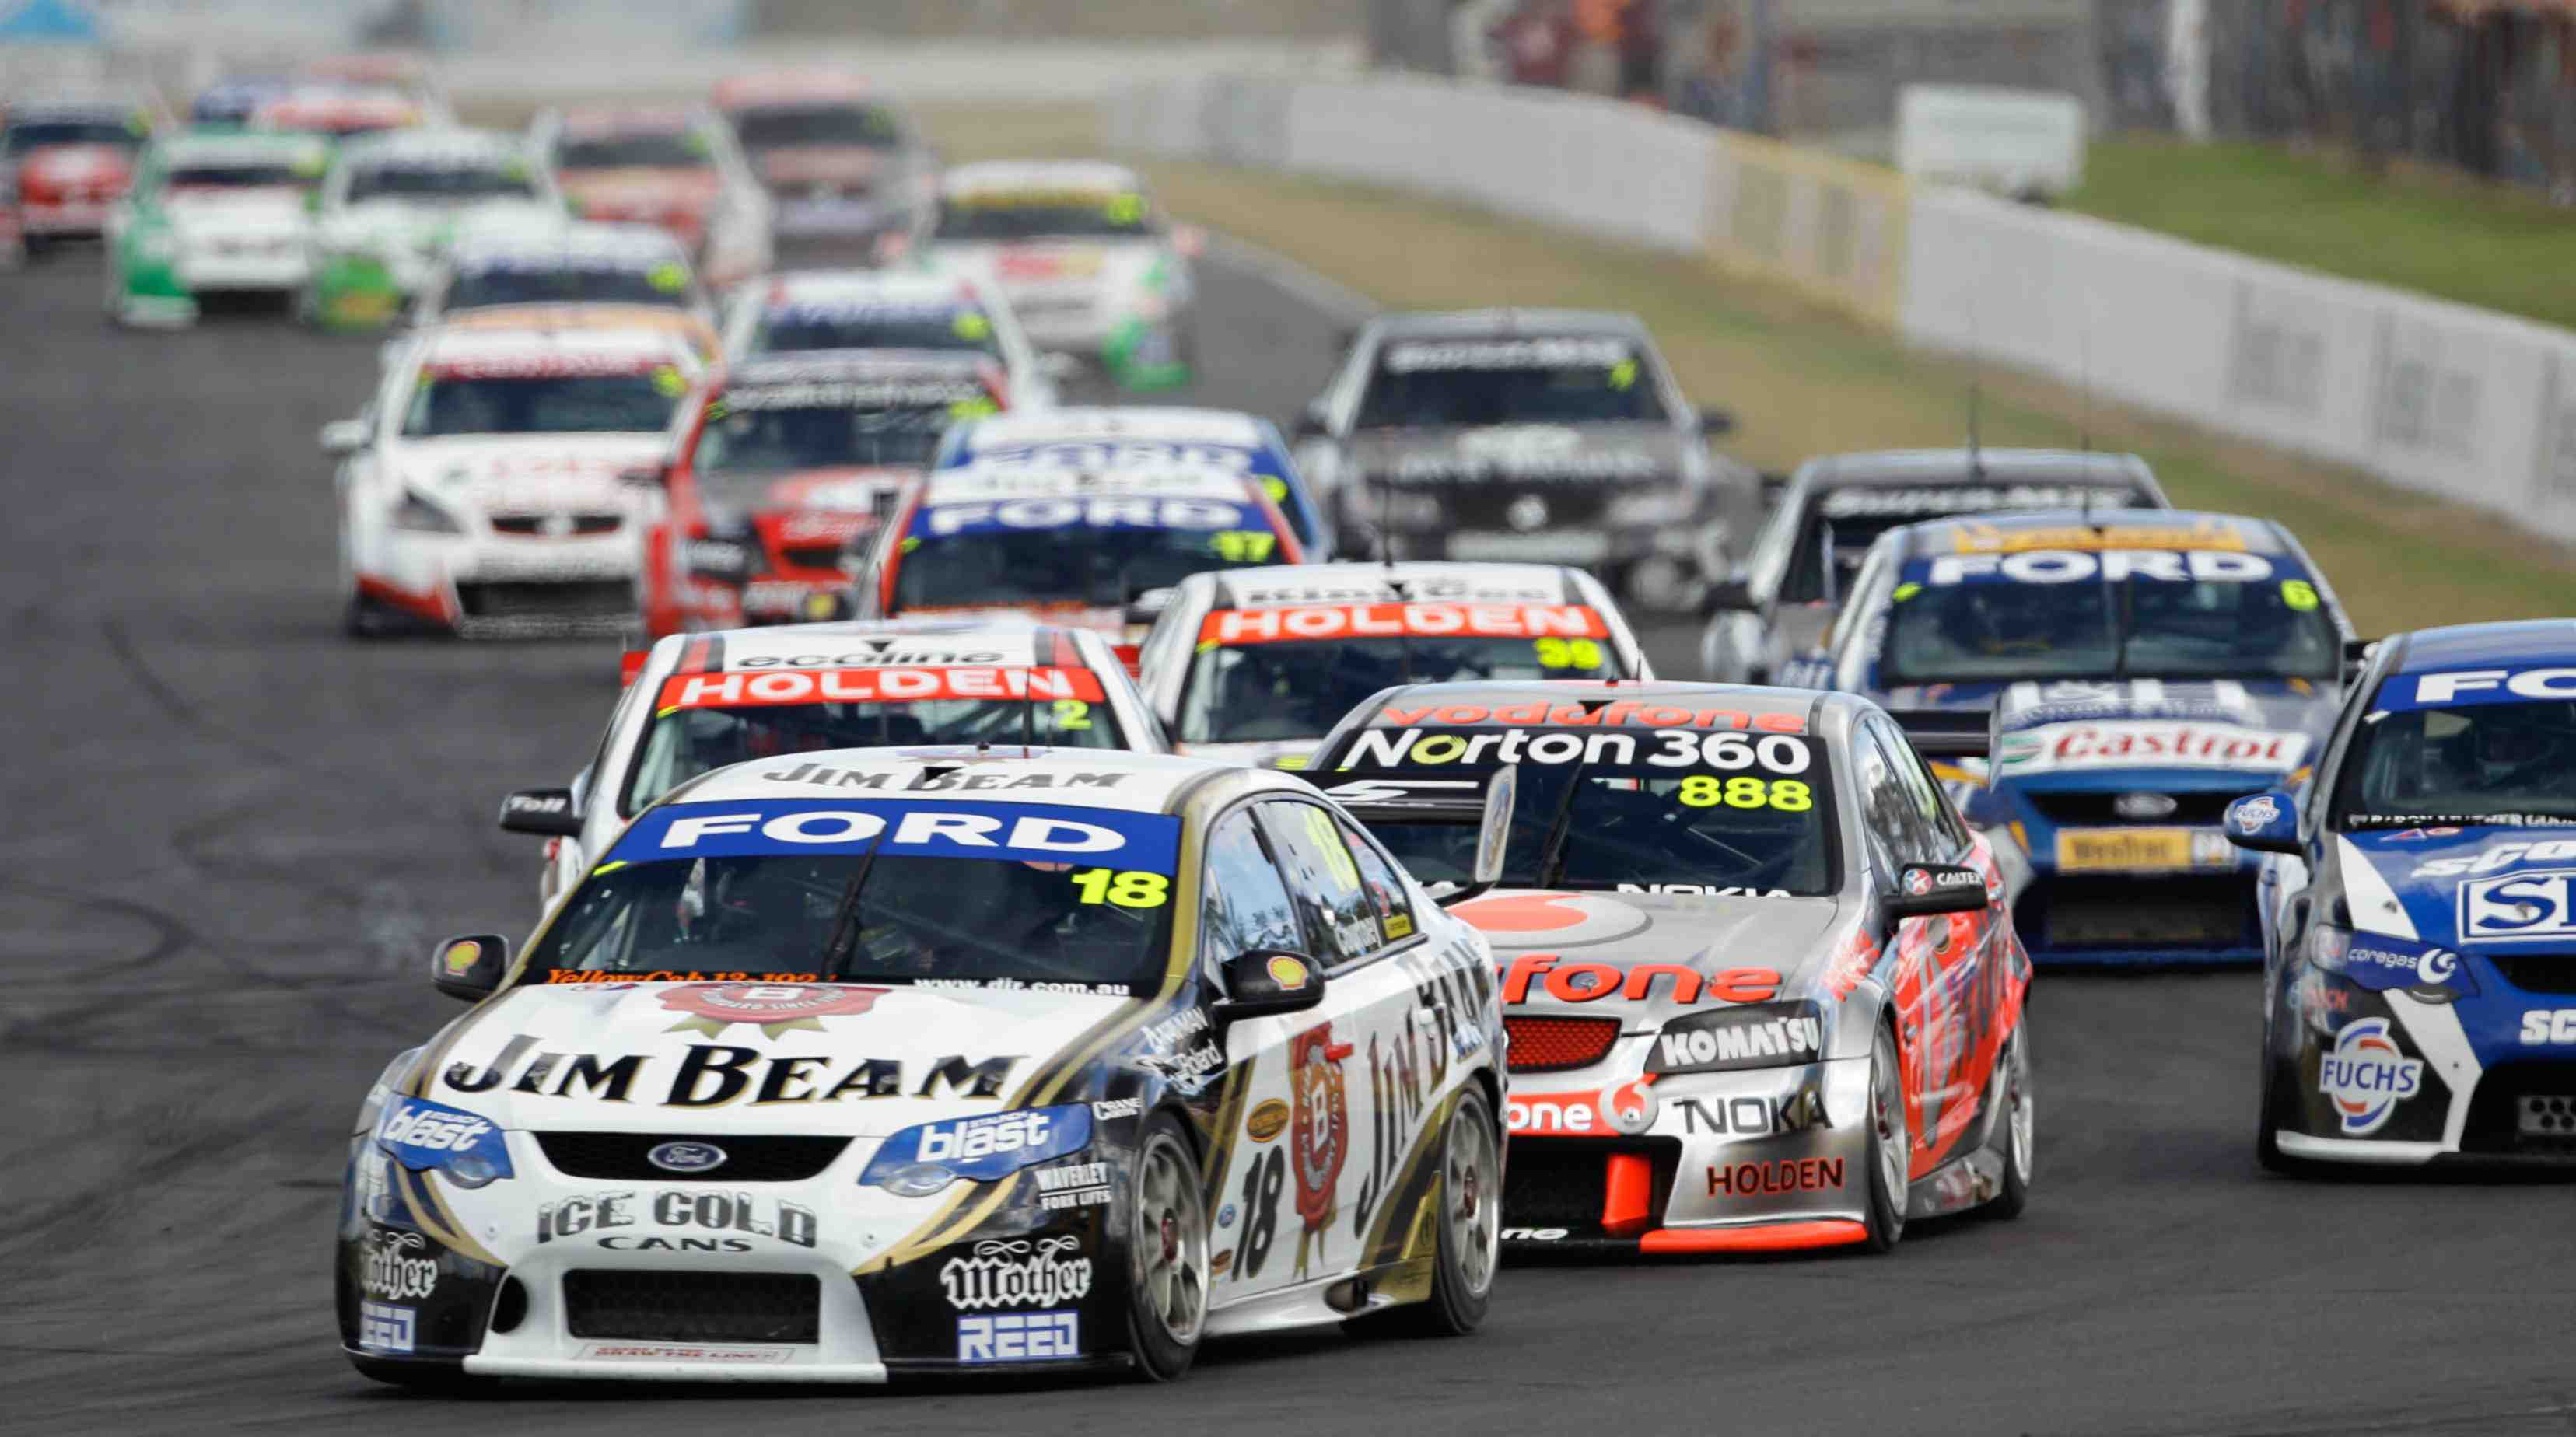 Aussie V8 Supercars race racing v 8 fs wallpaper 3312x1848 132159 3312x1848